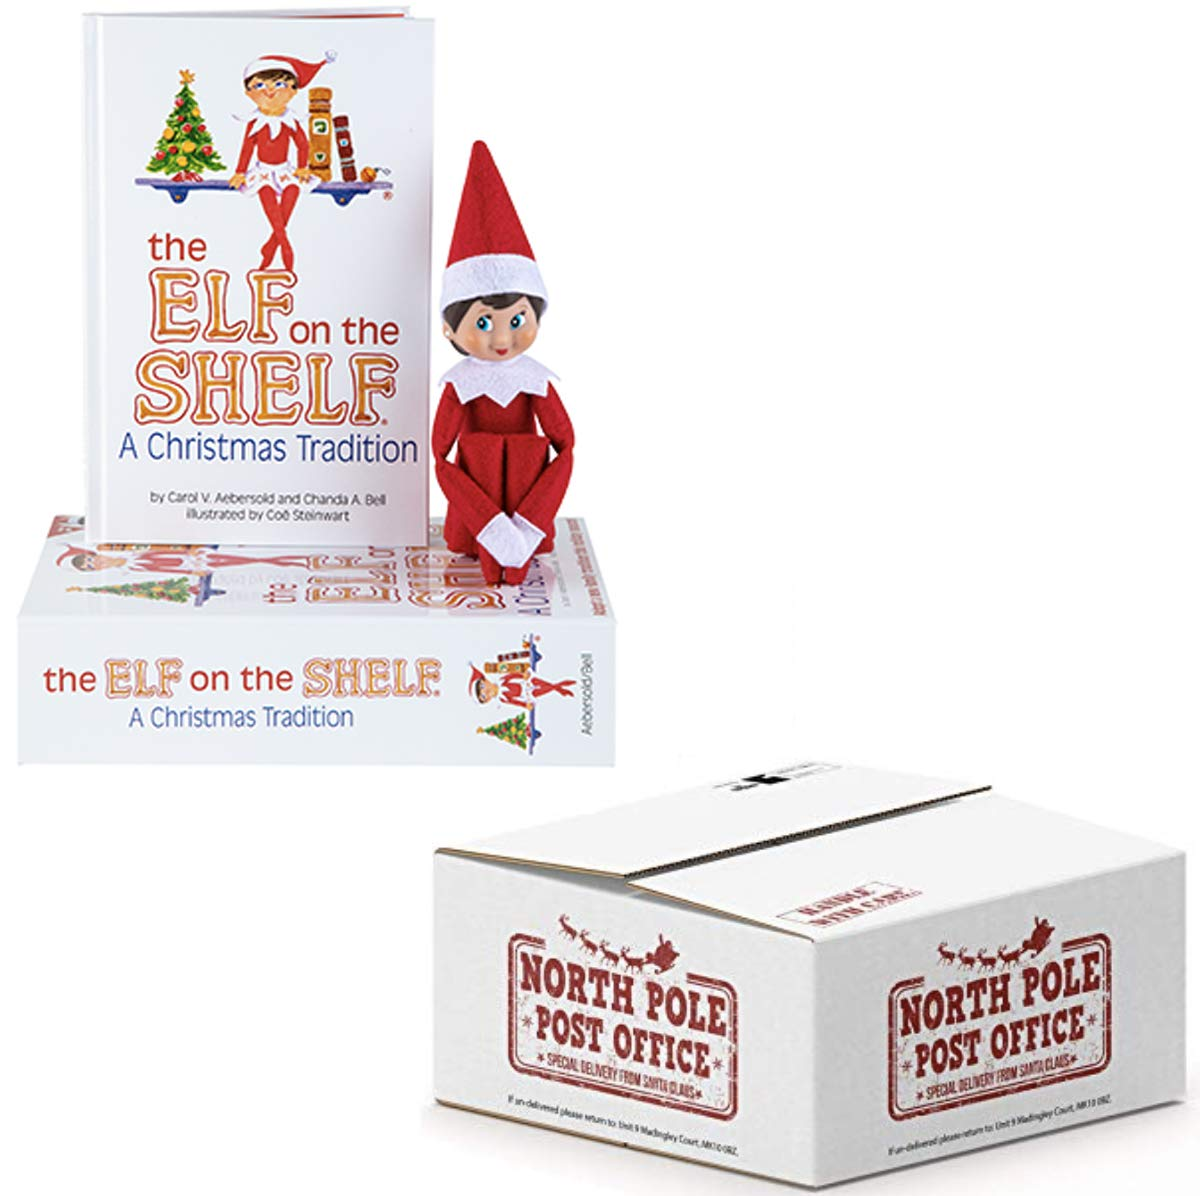 The Elf on the Shelf Christmas Tradition | Elf on the Shelf Girl, Light Tone, Blue Eyes | with Exclusive North Pole Mailing Box